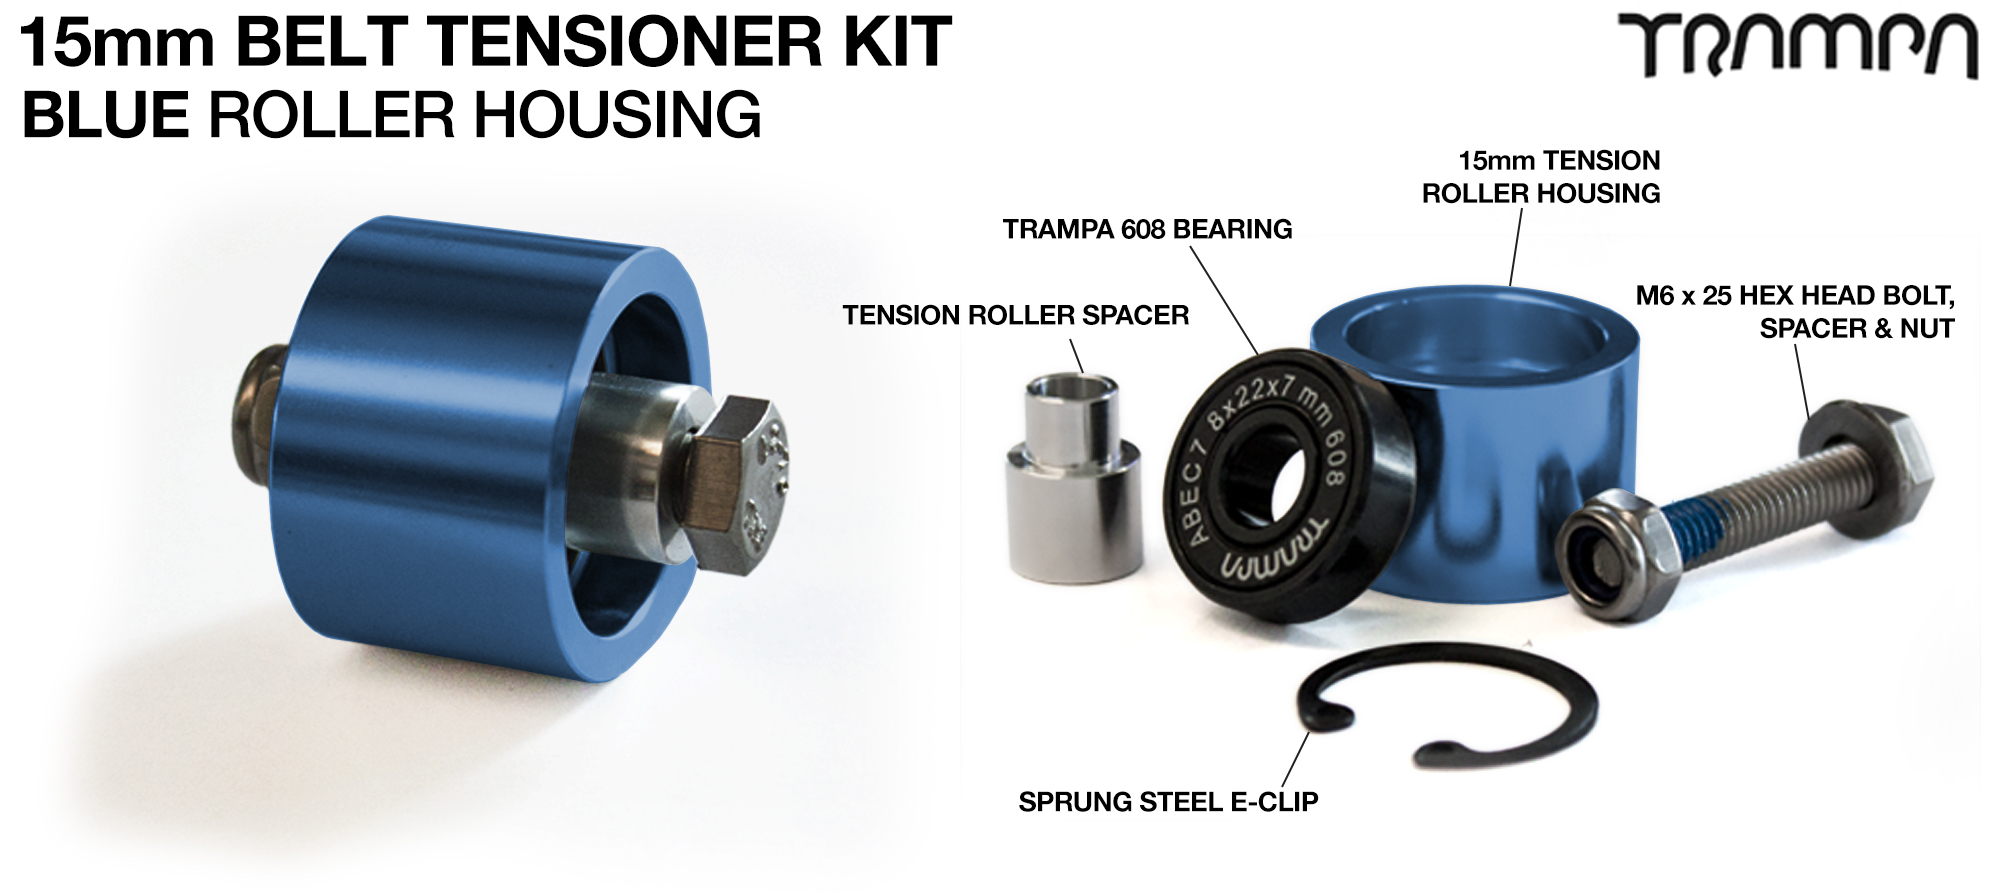 15mm Belt Tensioner - BLUE